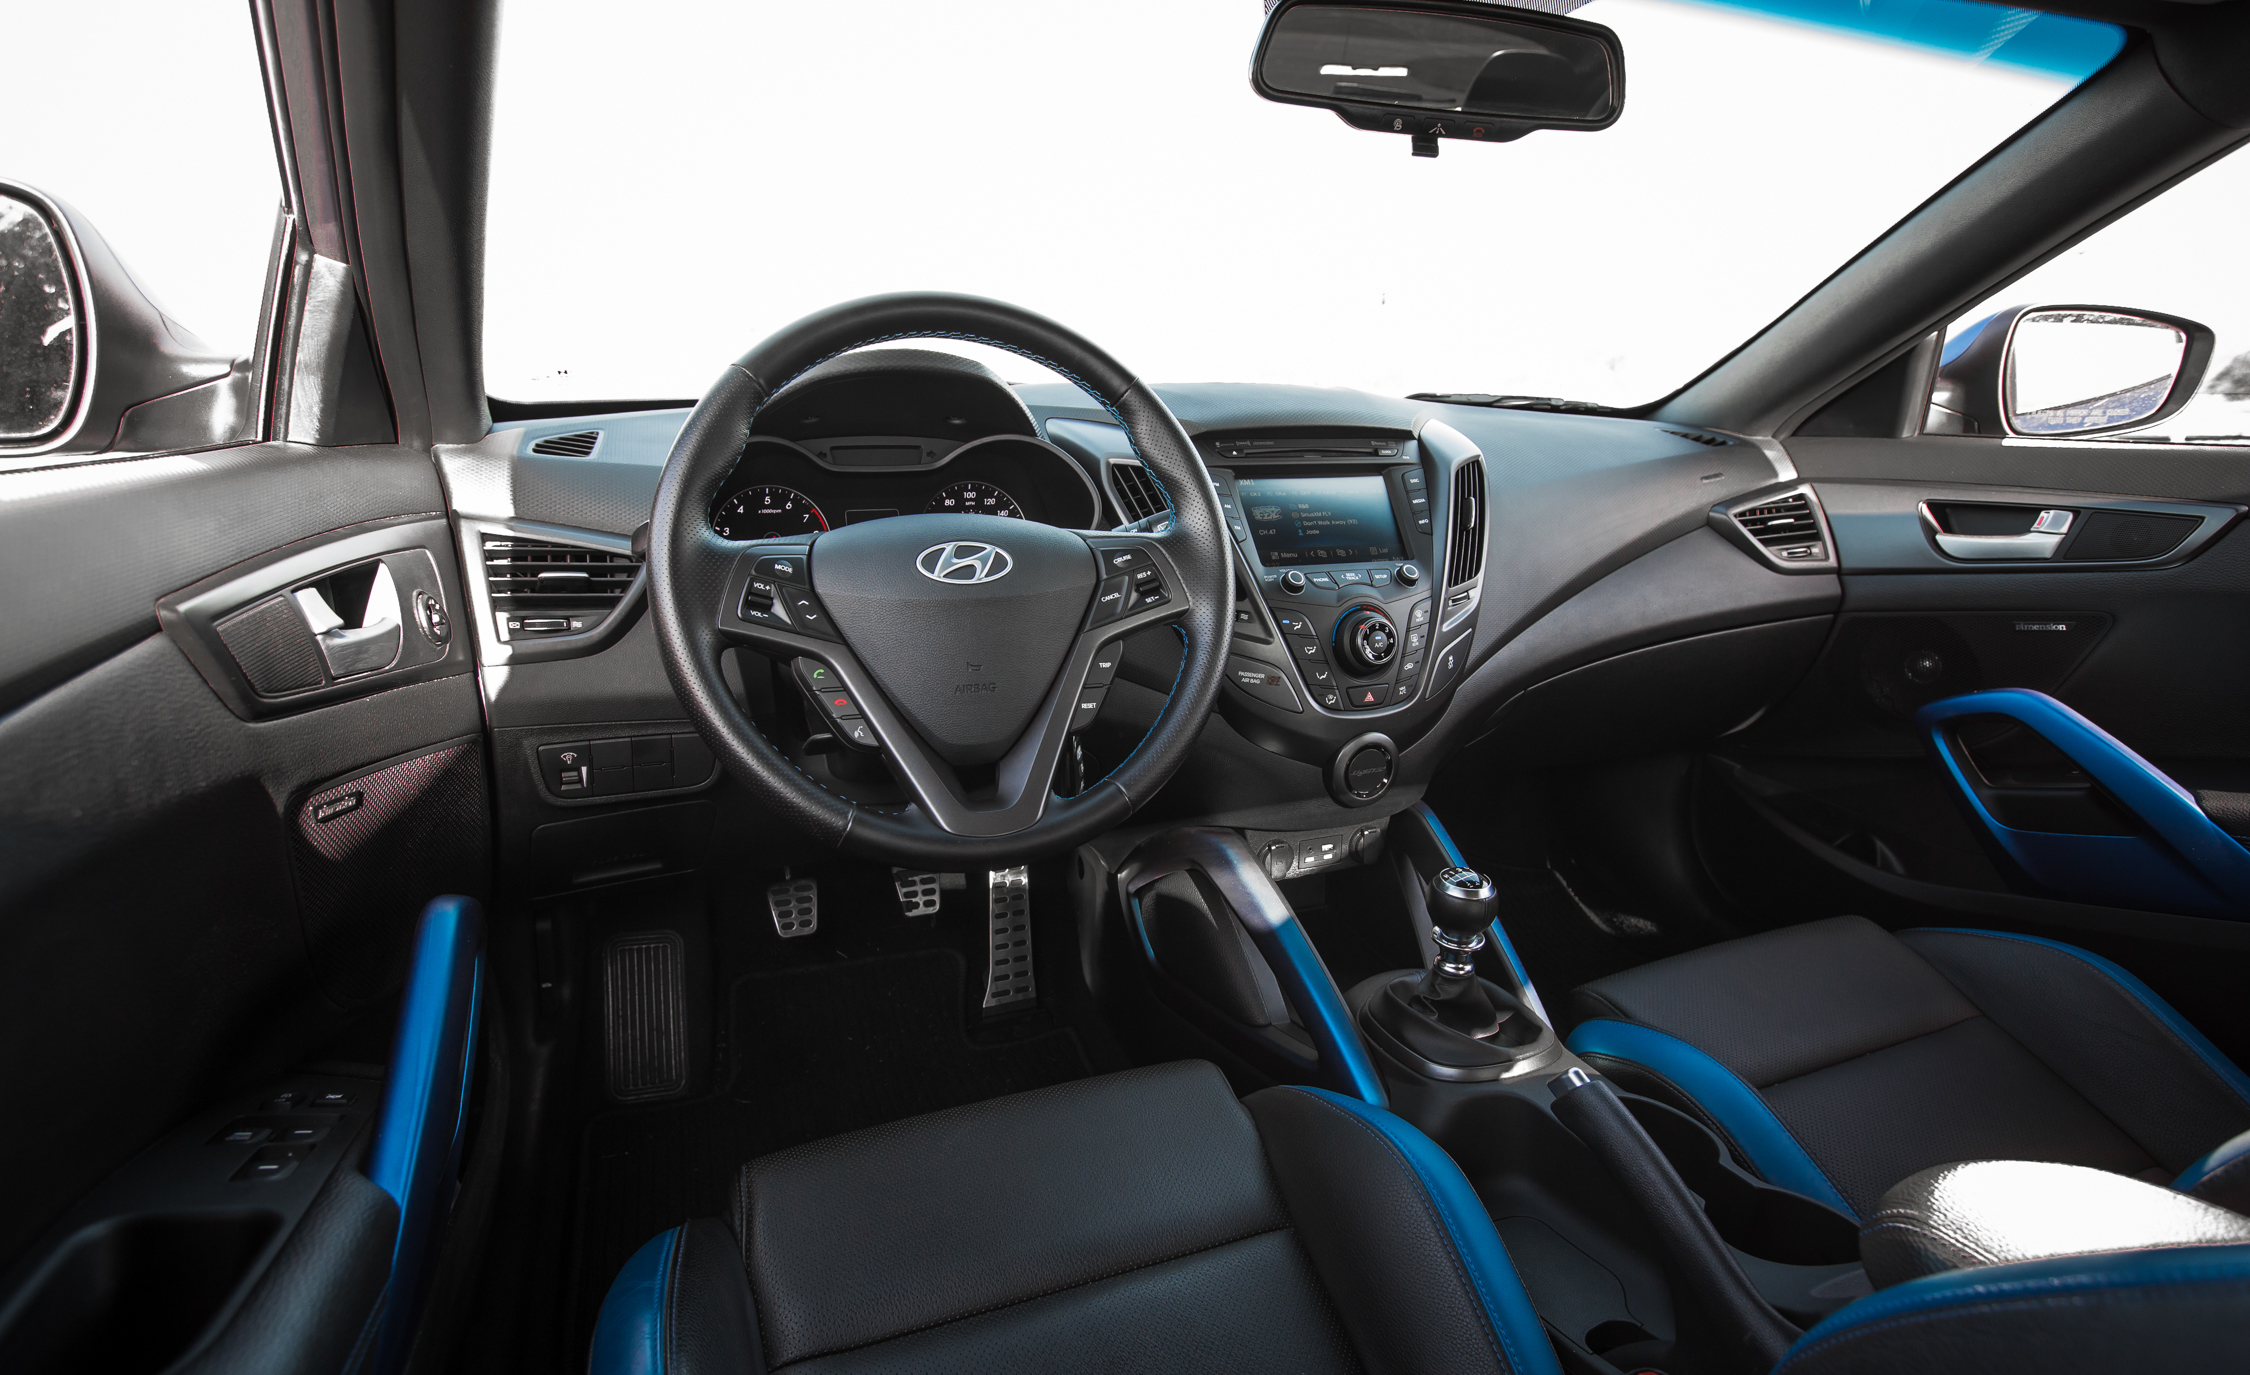 New 2016 Hyundai Veloster Turbo Rally Edition 9430 Cars Performance Reviews And Test Drive